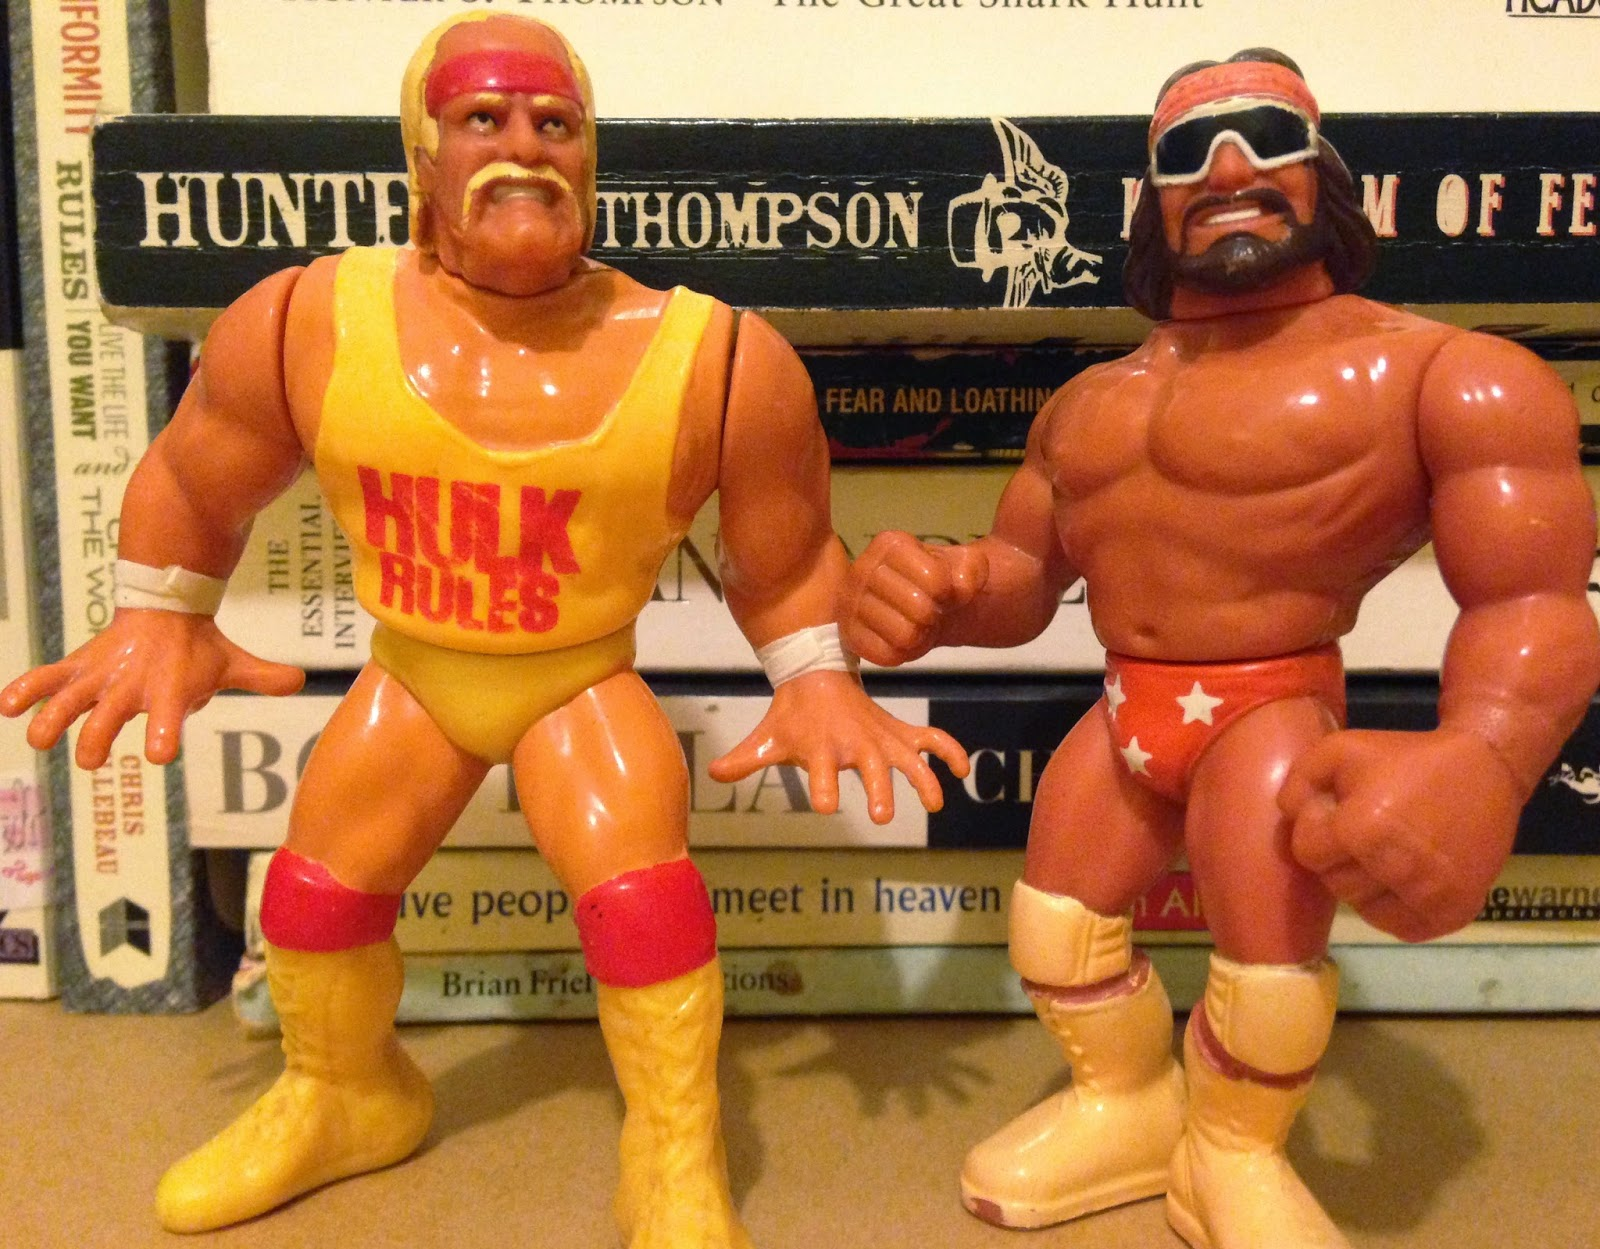 WWF / WWE - Hasbro Wrestling Figures - Macho Man Randy Savage vs.Hulk Hogan - The Mega Powers Explode at Wrestlemania 5